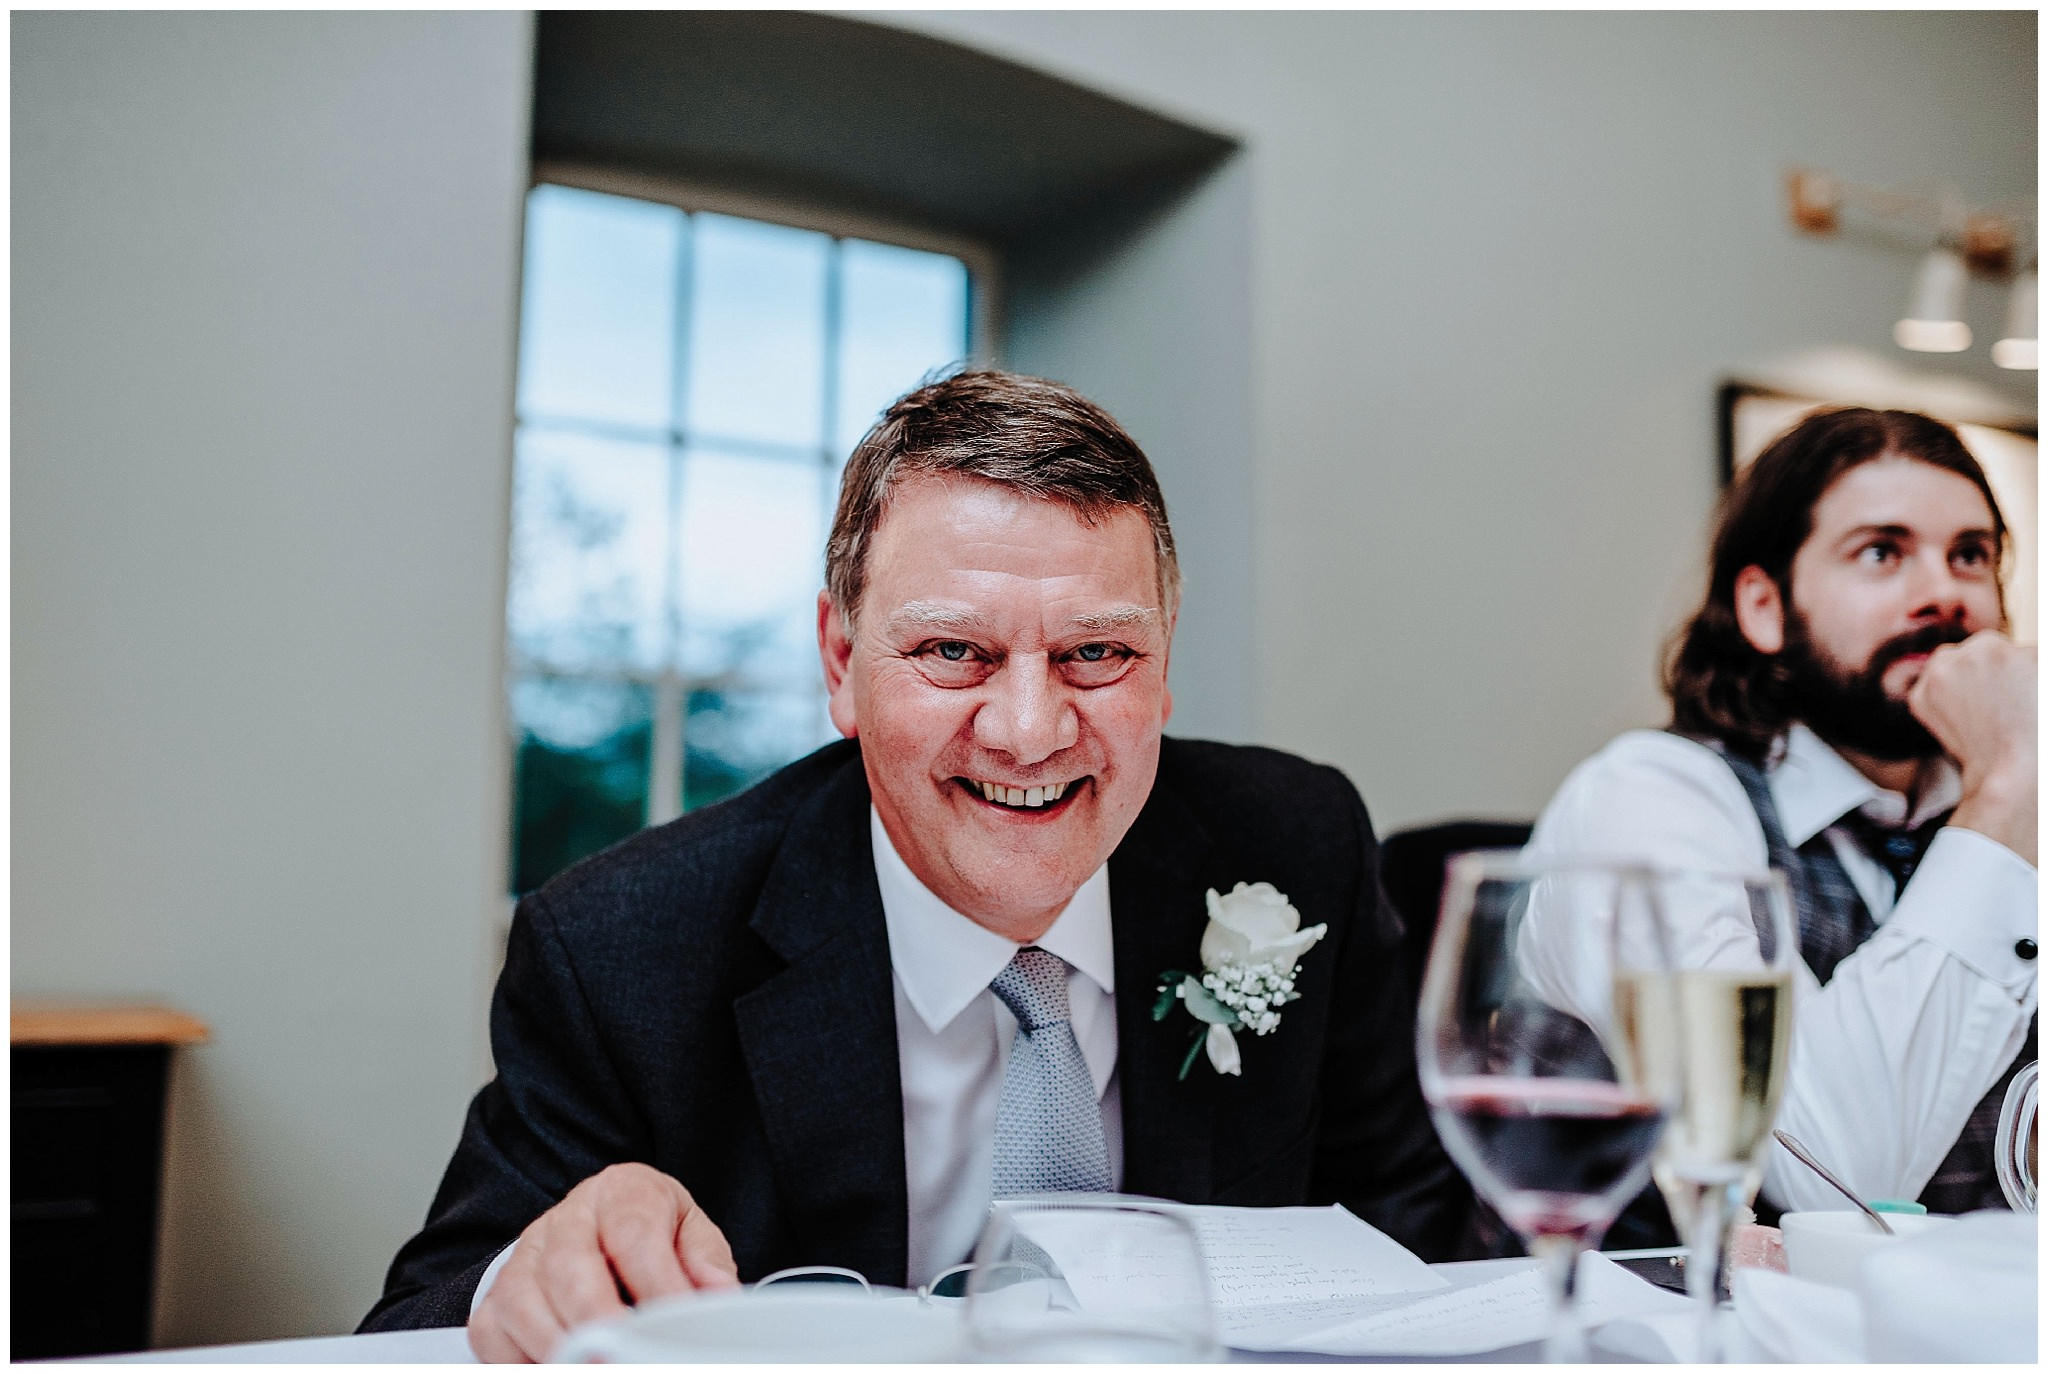 Father of the bride smiling during his speech